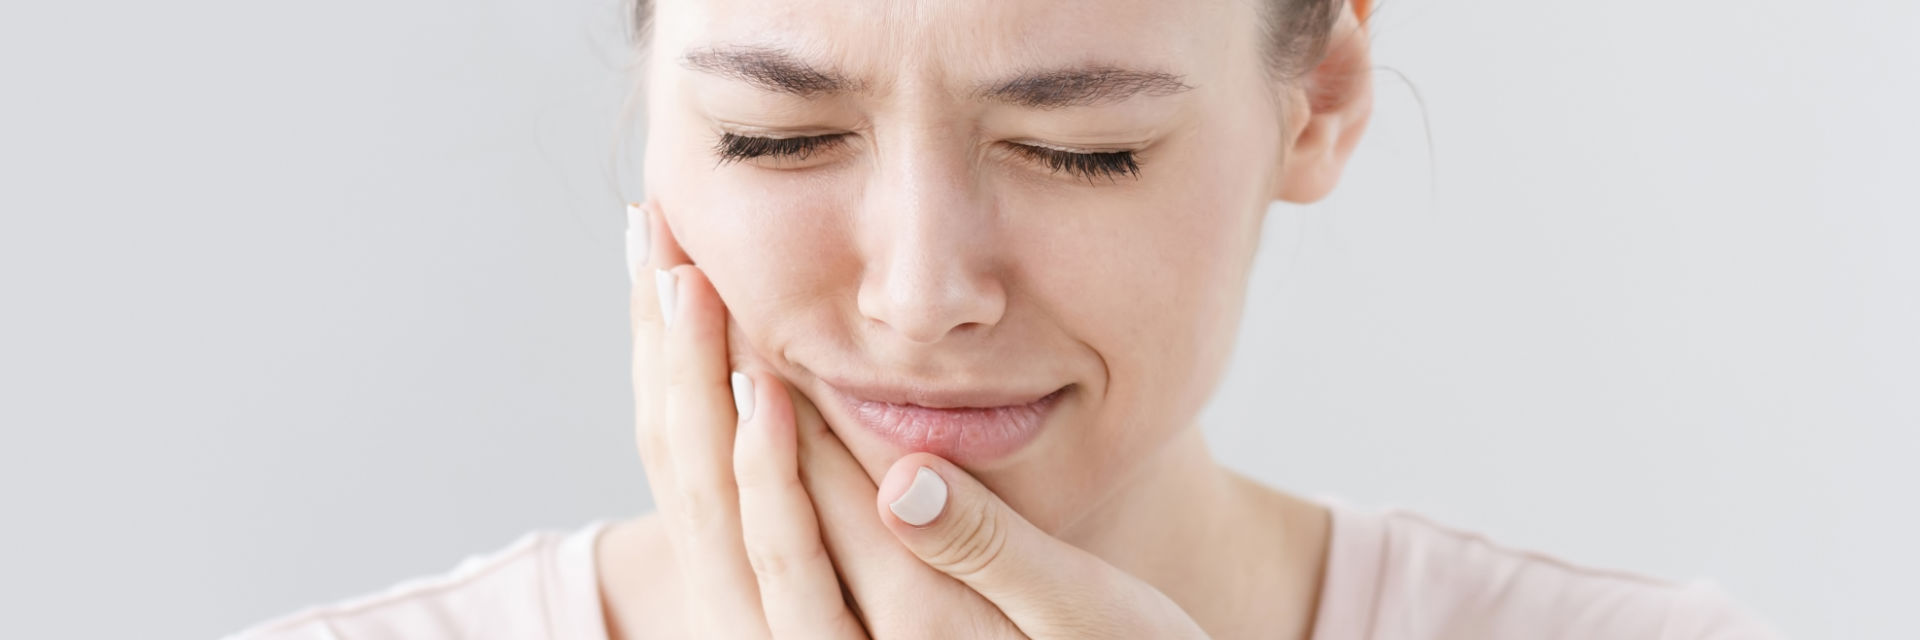 Young woman with severe jaw pain caused by TMJ syndrome.